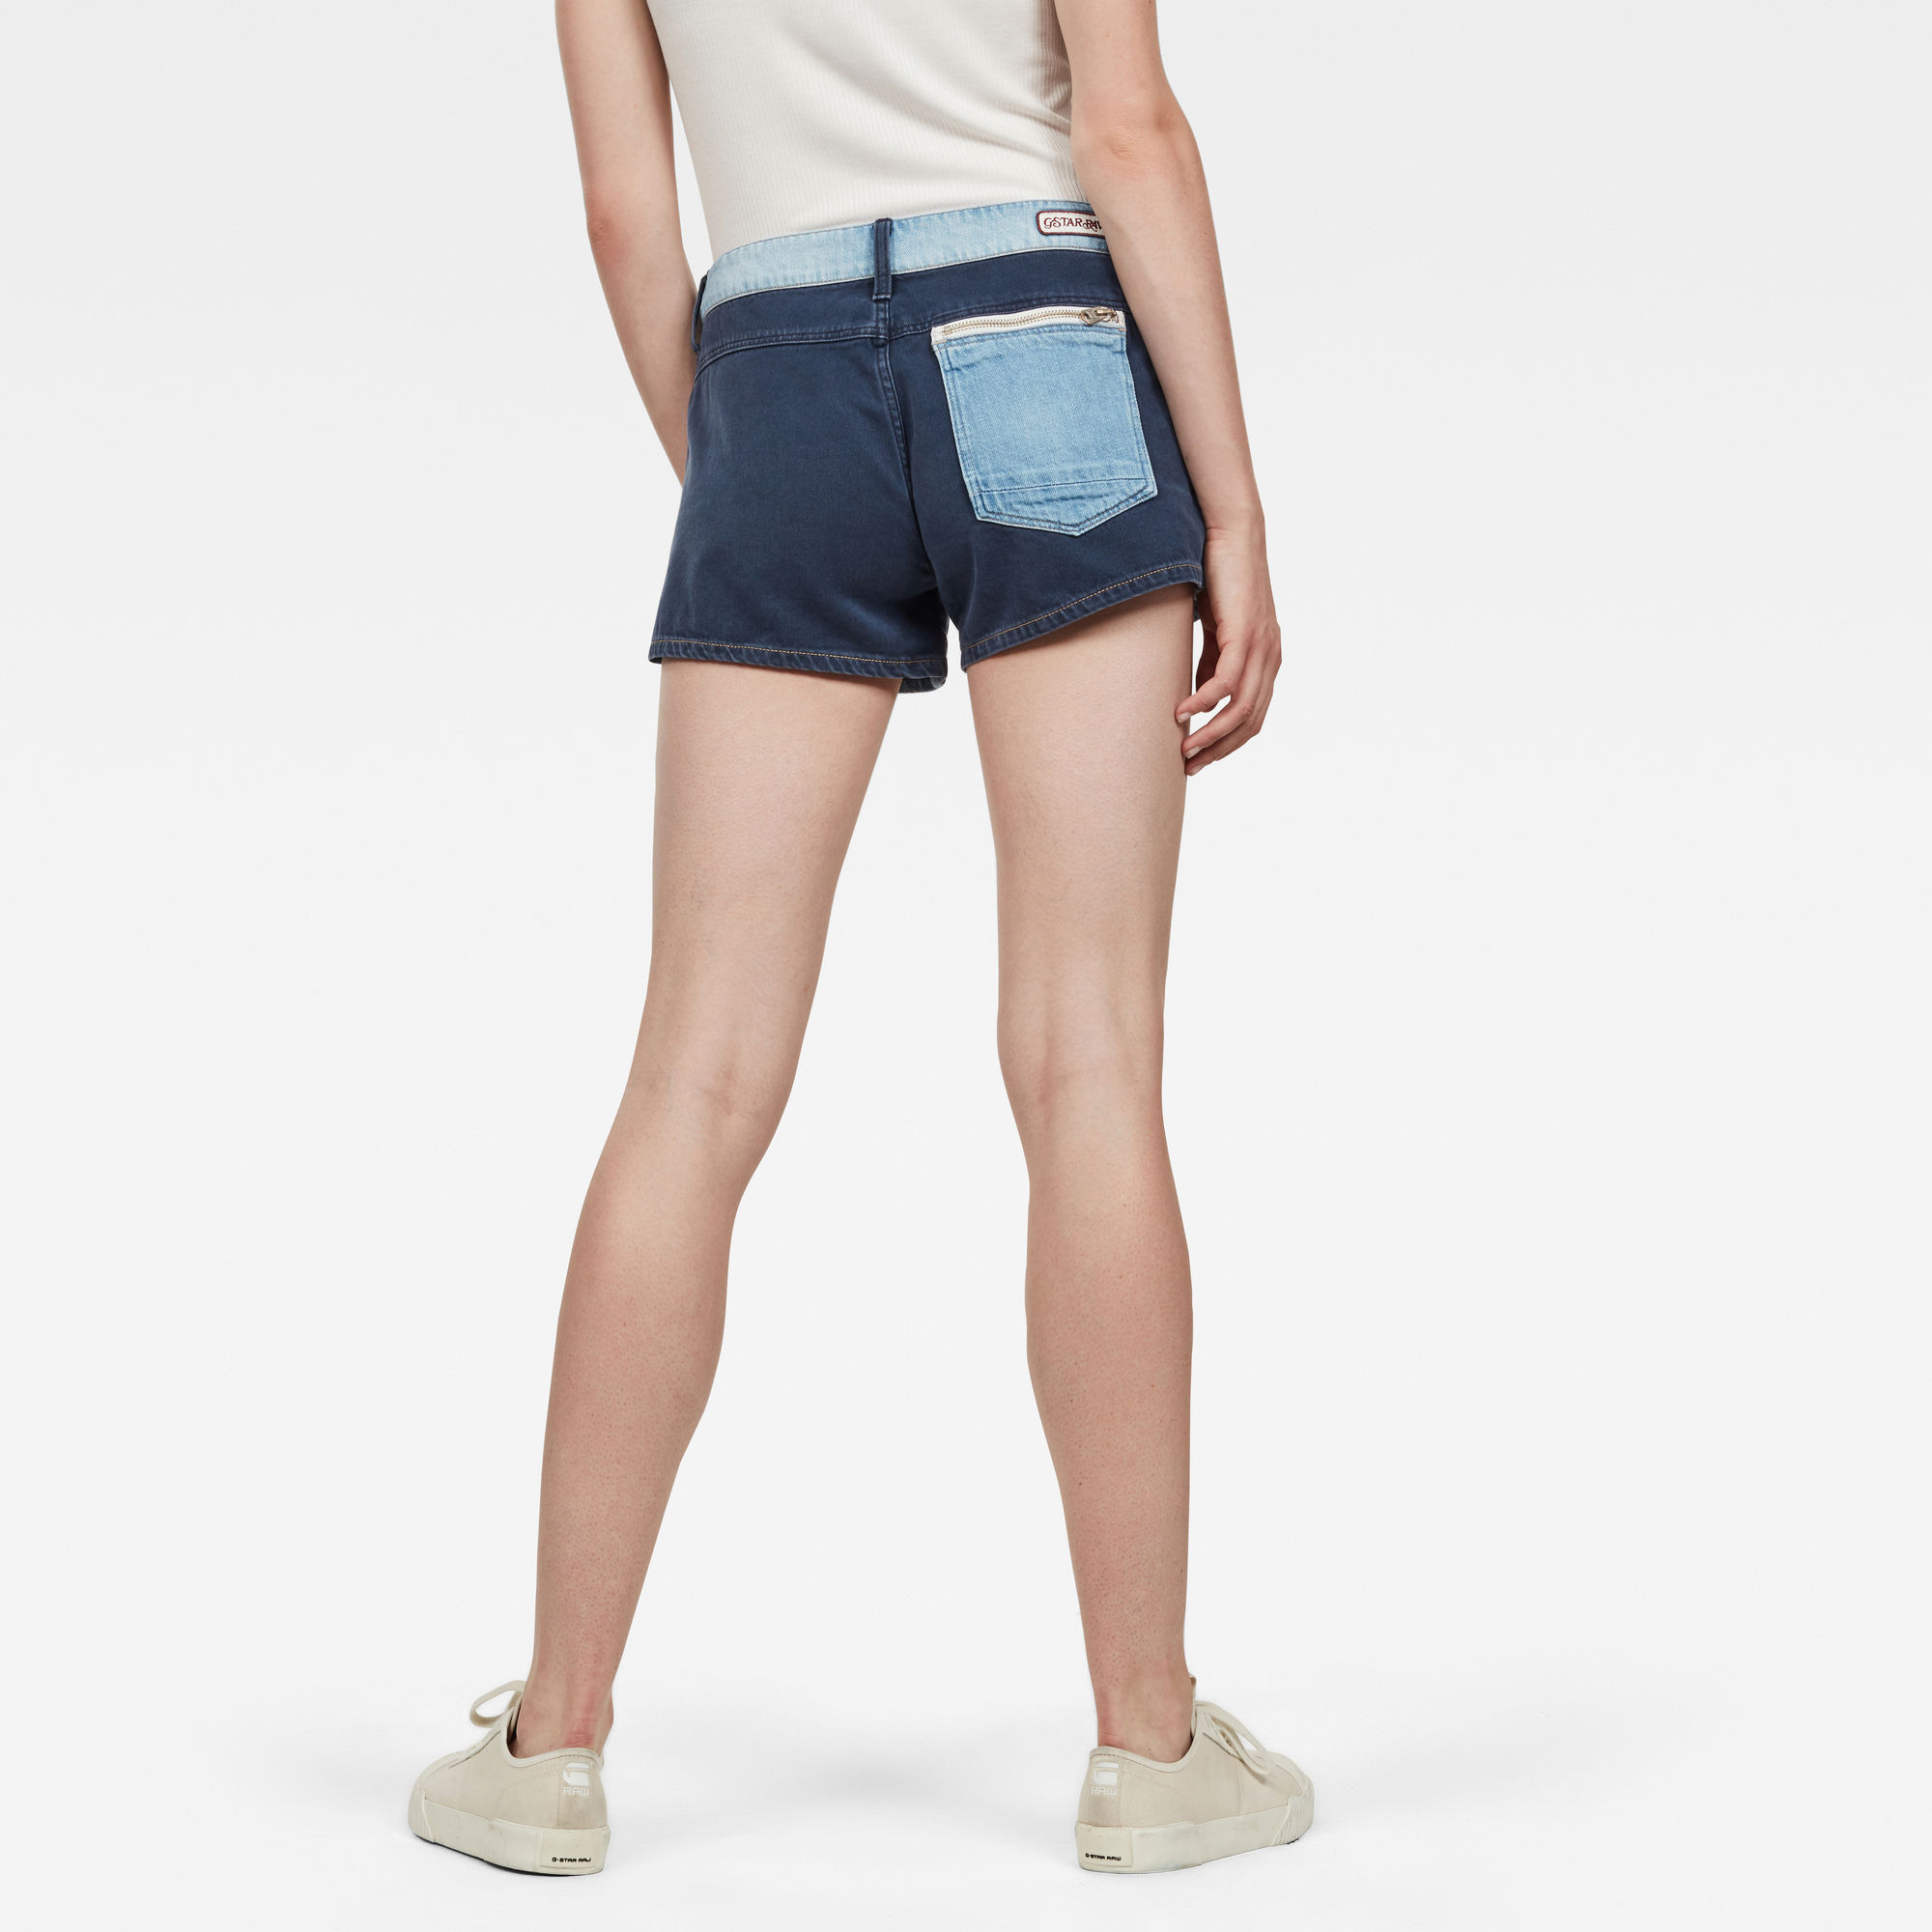 G-Star RAW Faeroes Zip Mid Boyfriend Short